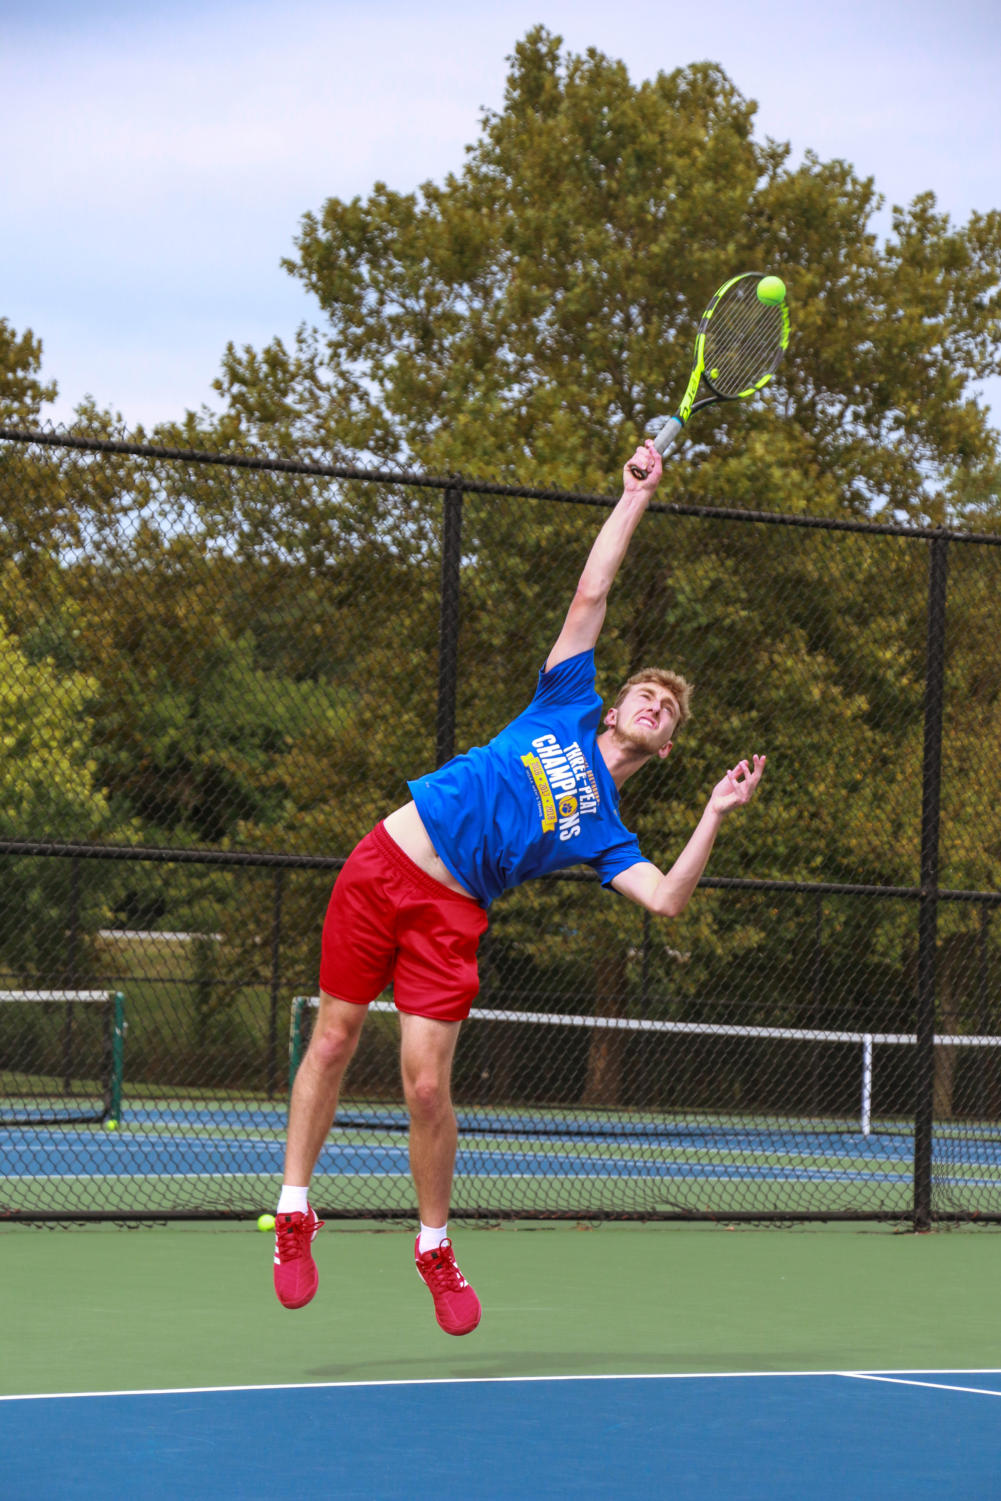 Carter Novak, junior varsity men's tennis player and senior, plays a practice doubles match against fellow CHS team member on Aug. 30. The varsity men's tennis team will compete in the MIC Championship at Ben Davis tomorrow, Sept. 21 at 8:30 a.m.